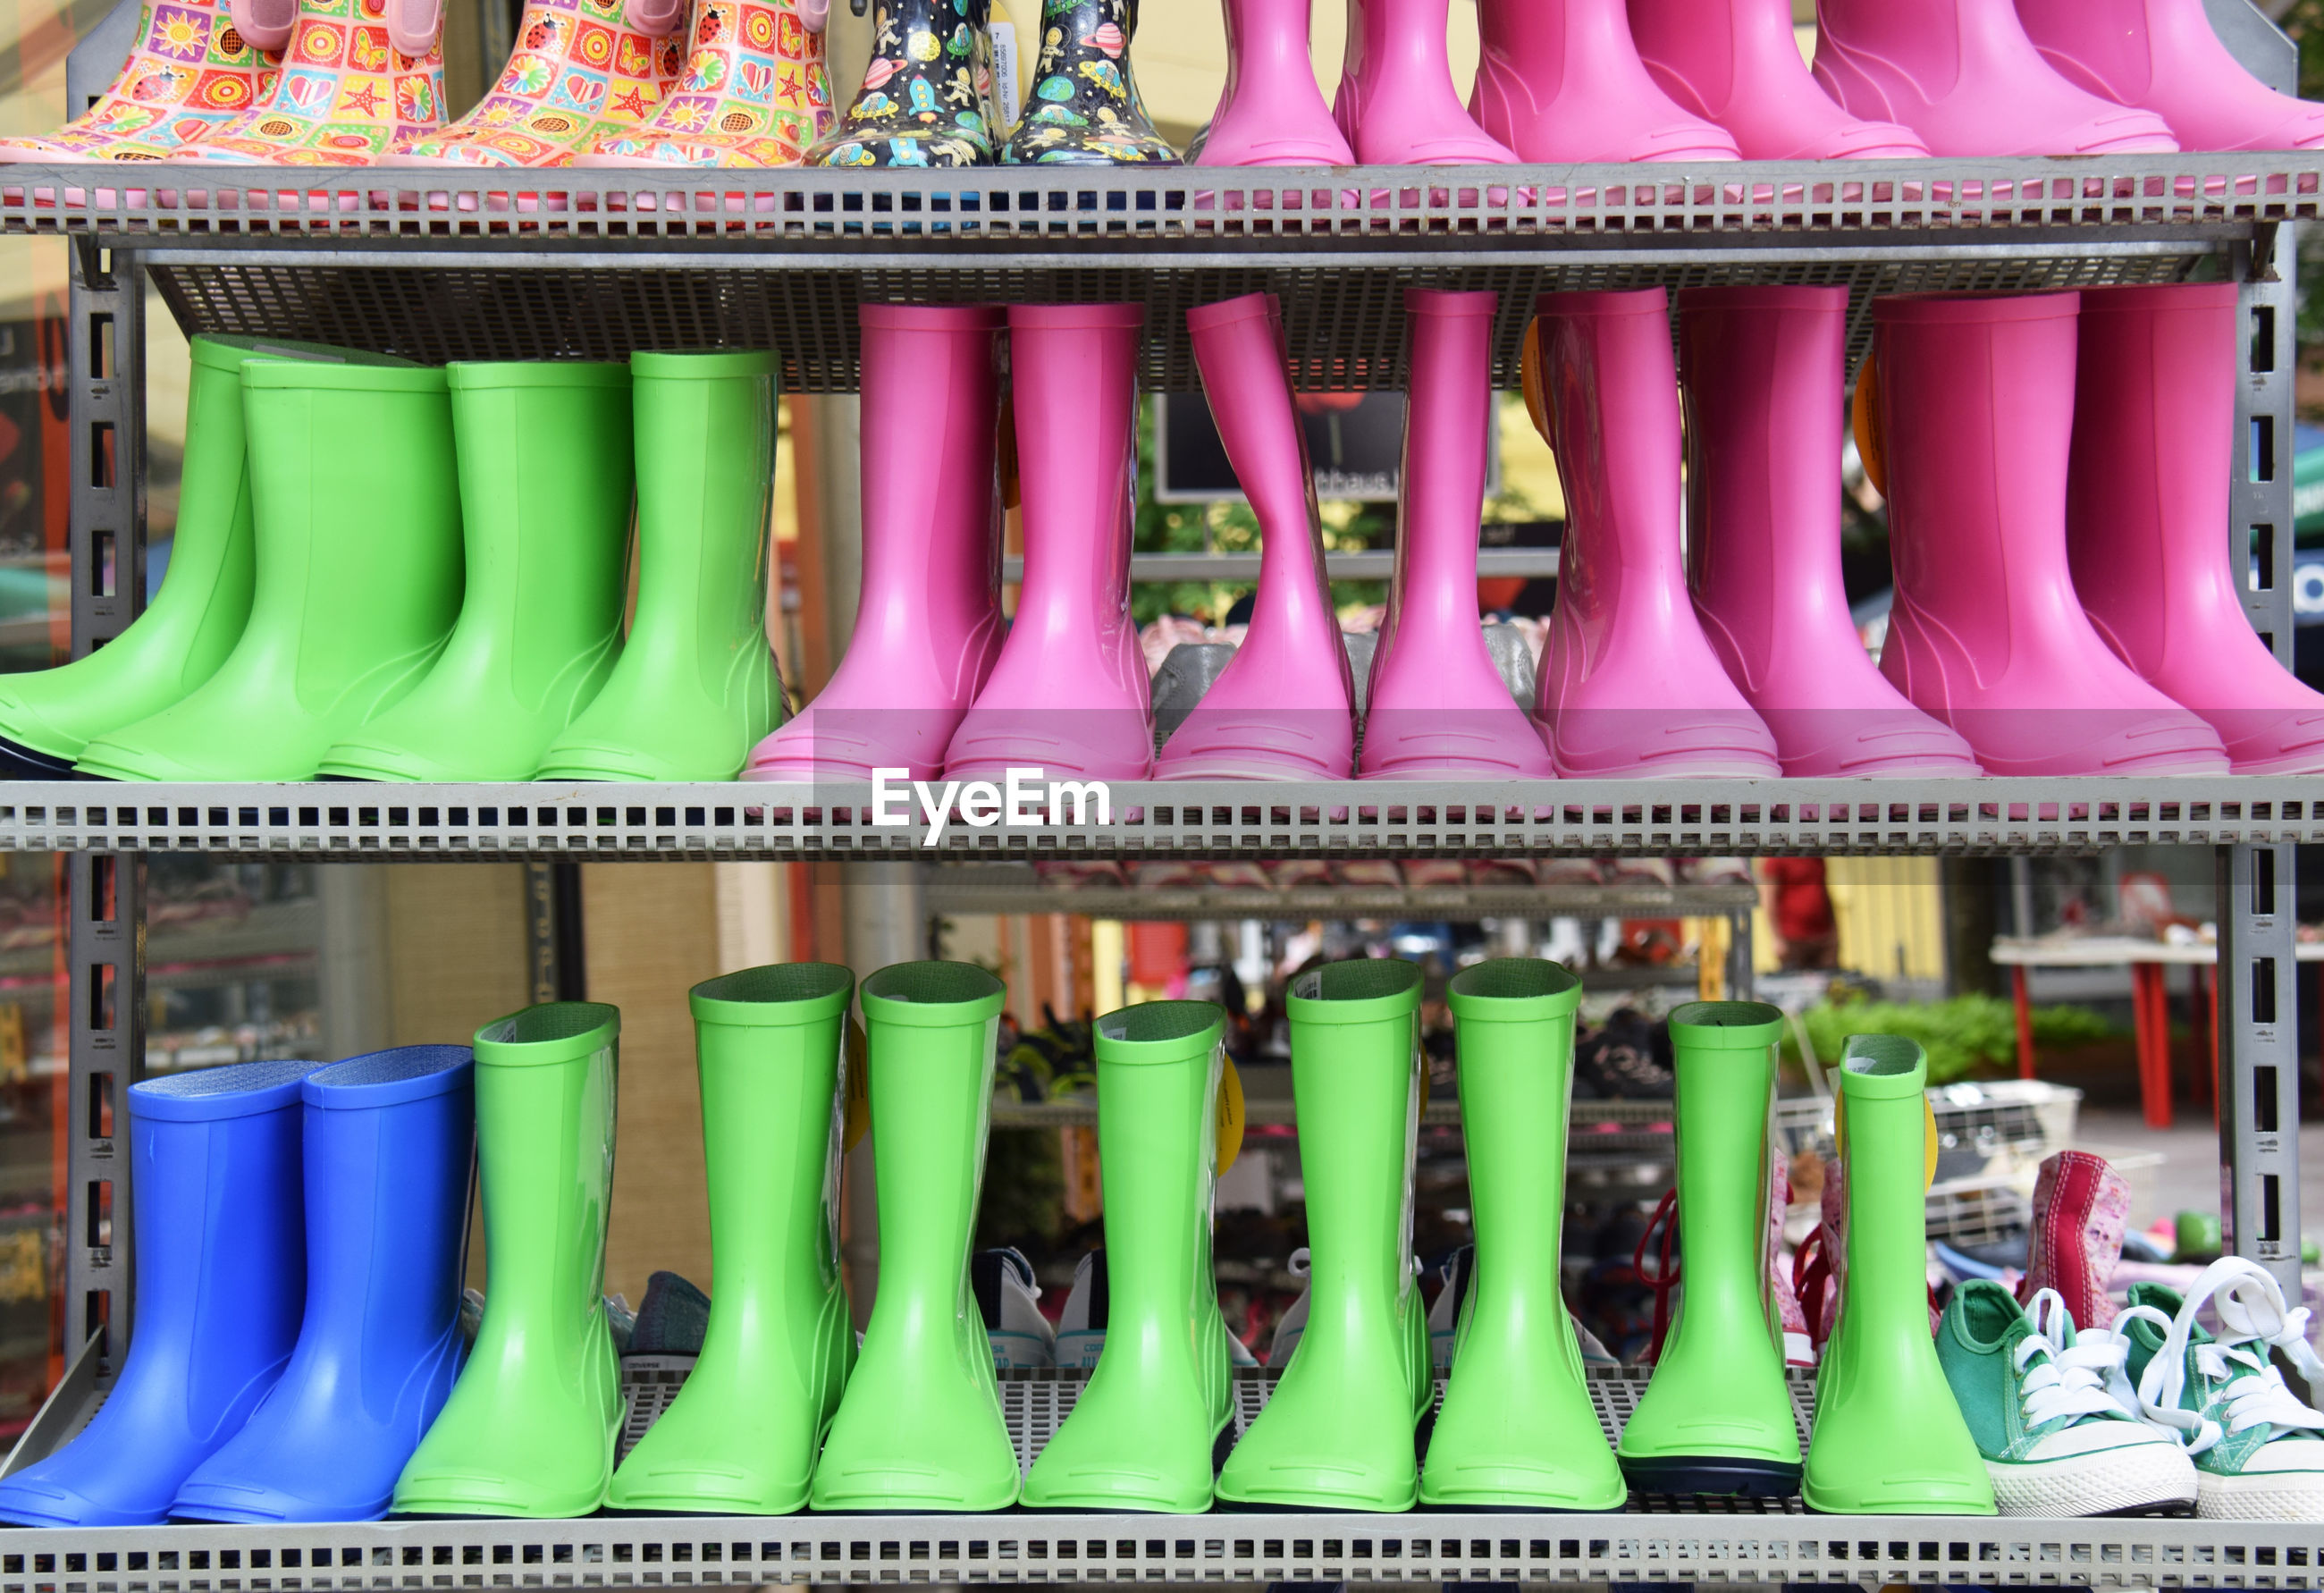 Rubber boots for sale at market stall